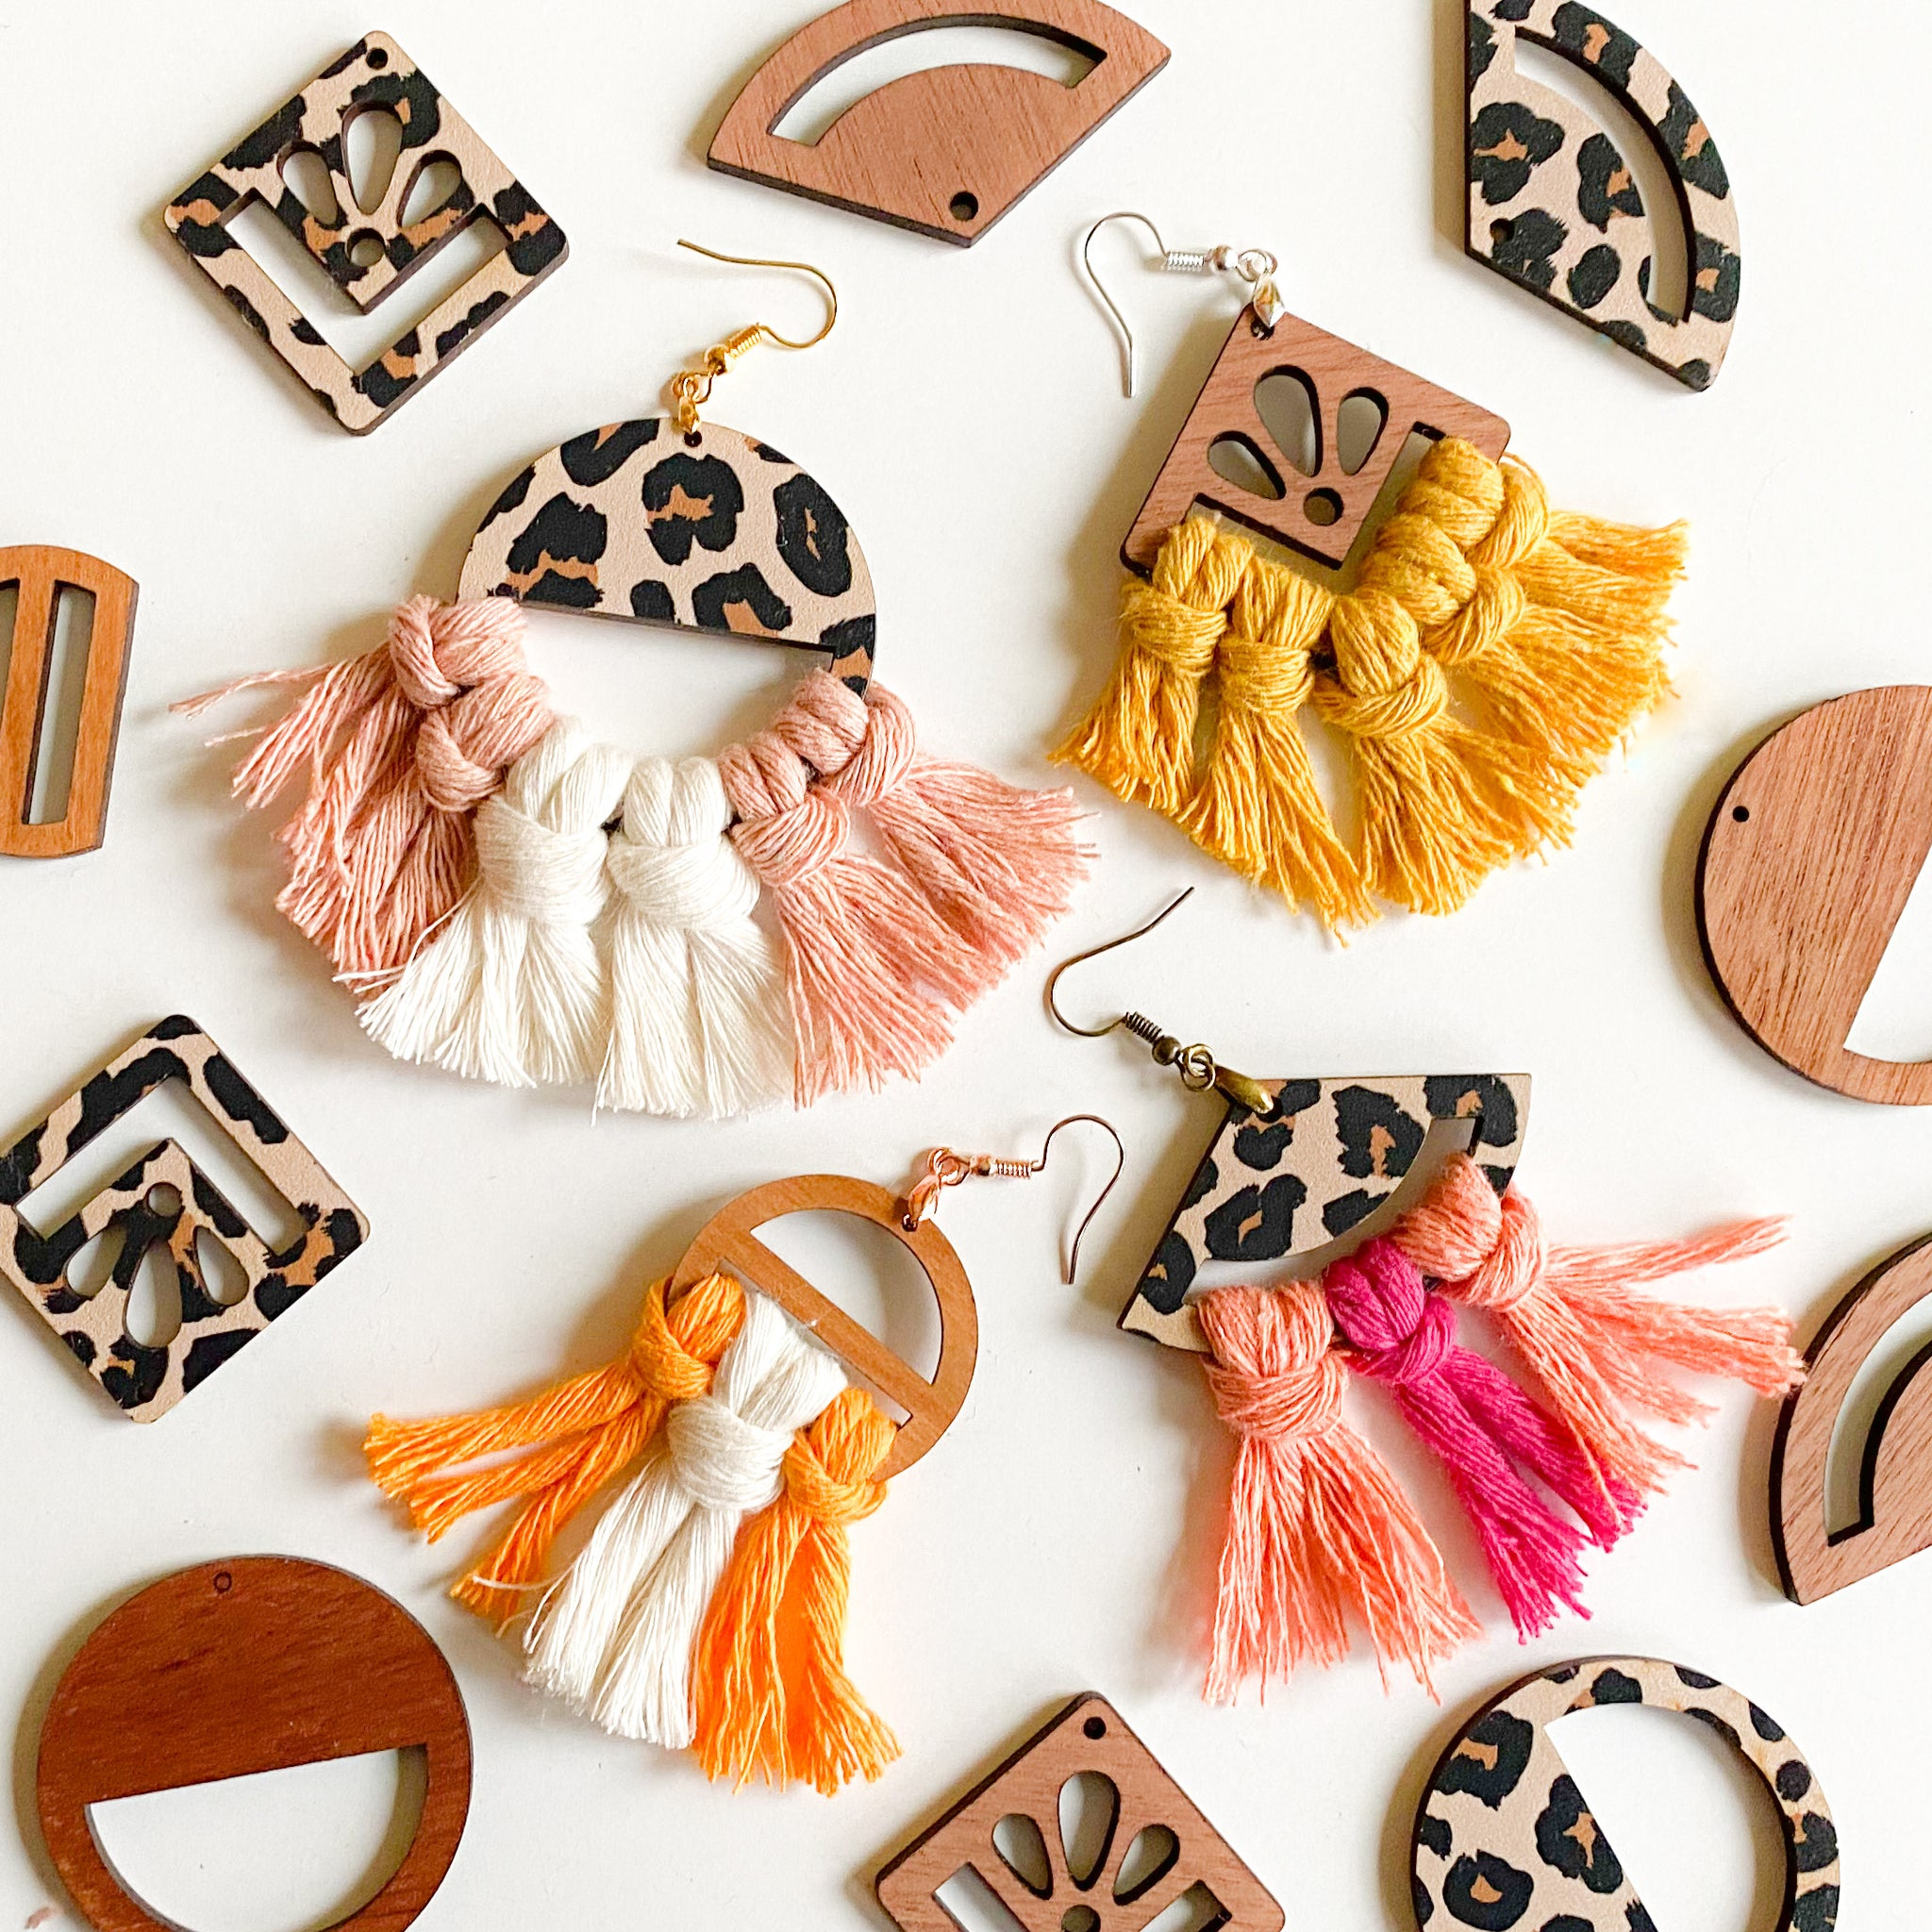 DIY Macrame Earring Kit